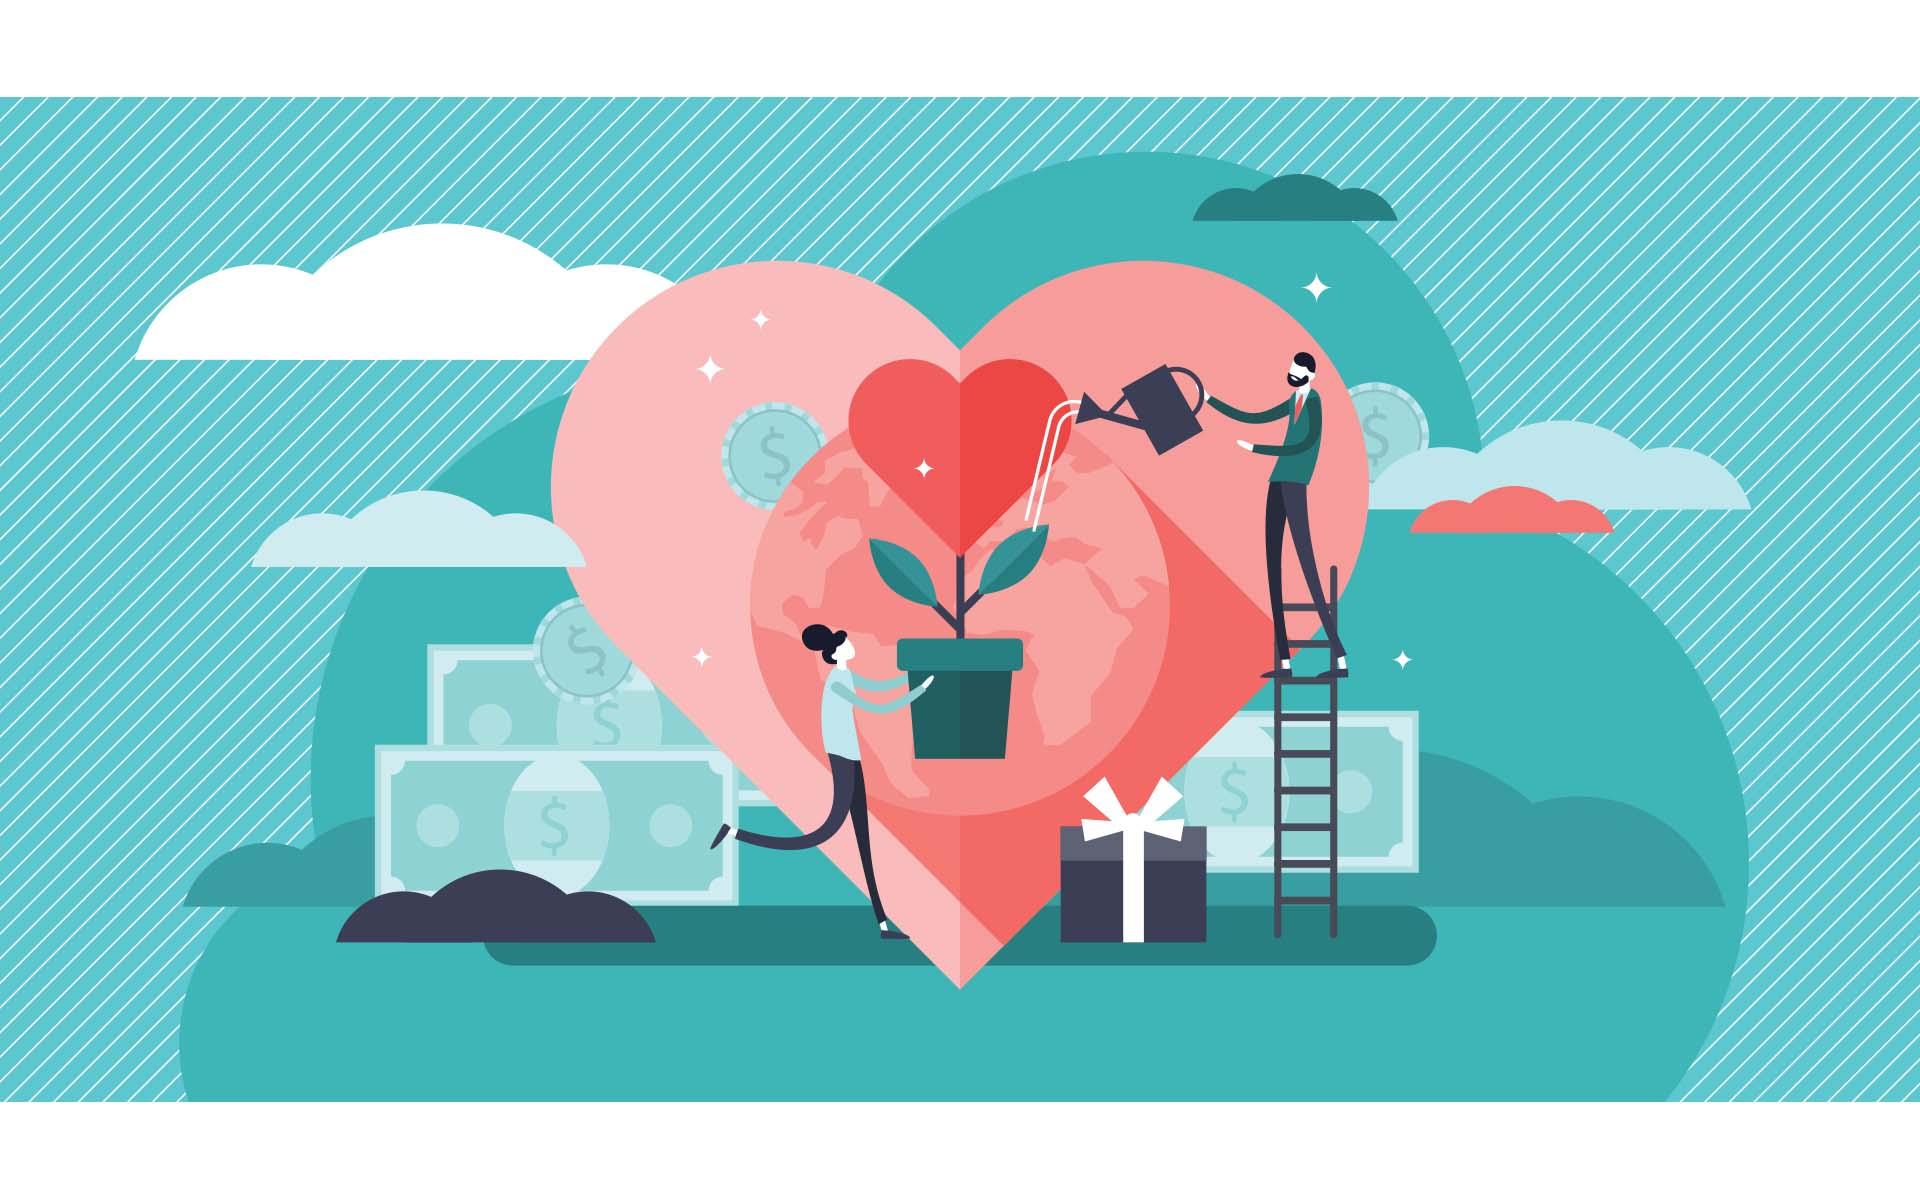 the gift of Loving-Kindness_Illustration of two people watering a plant with a heart flower